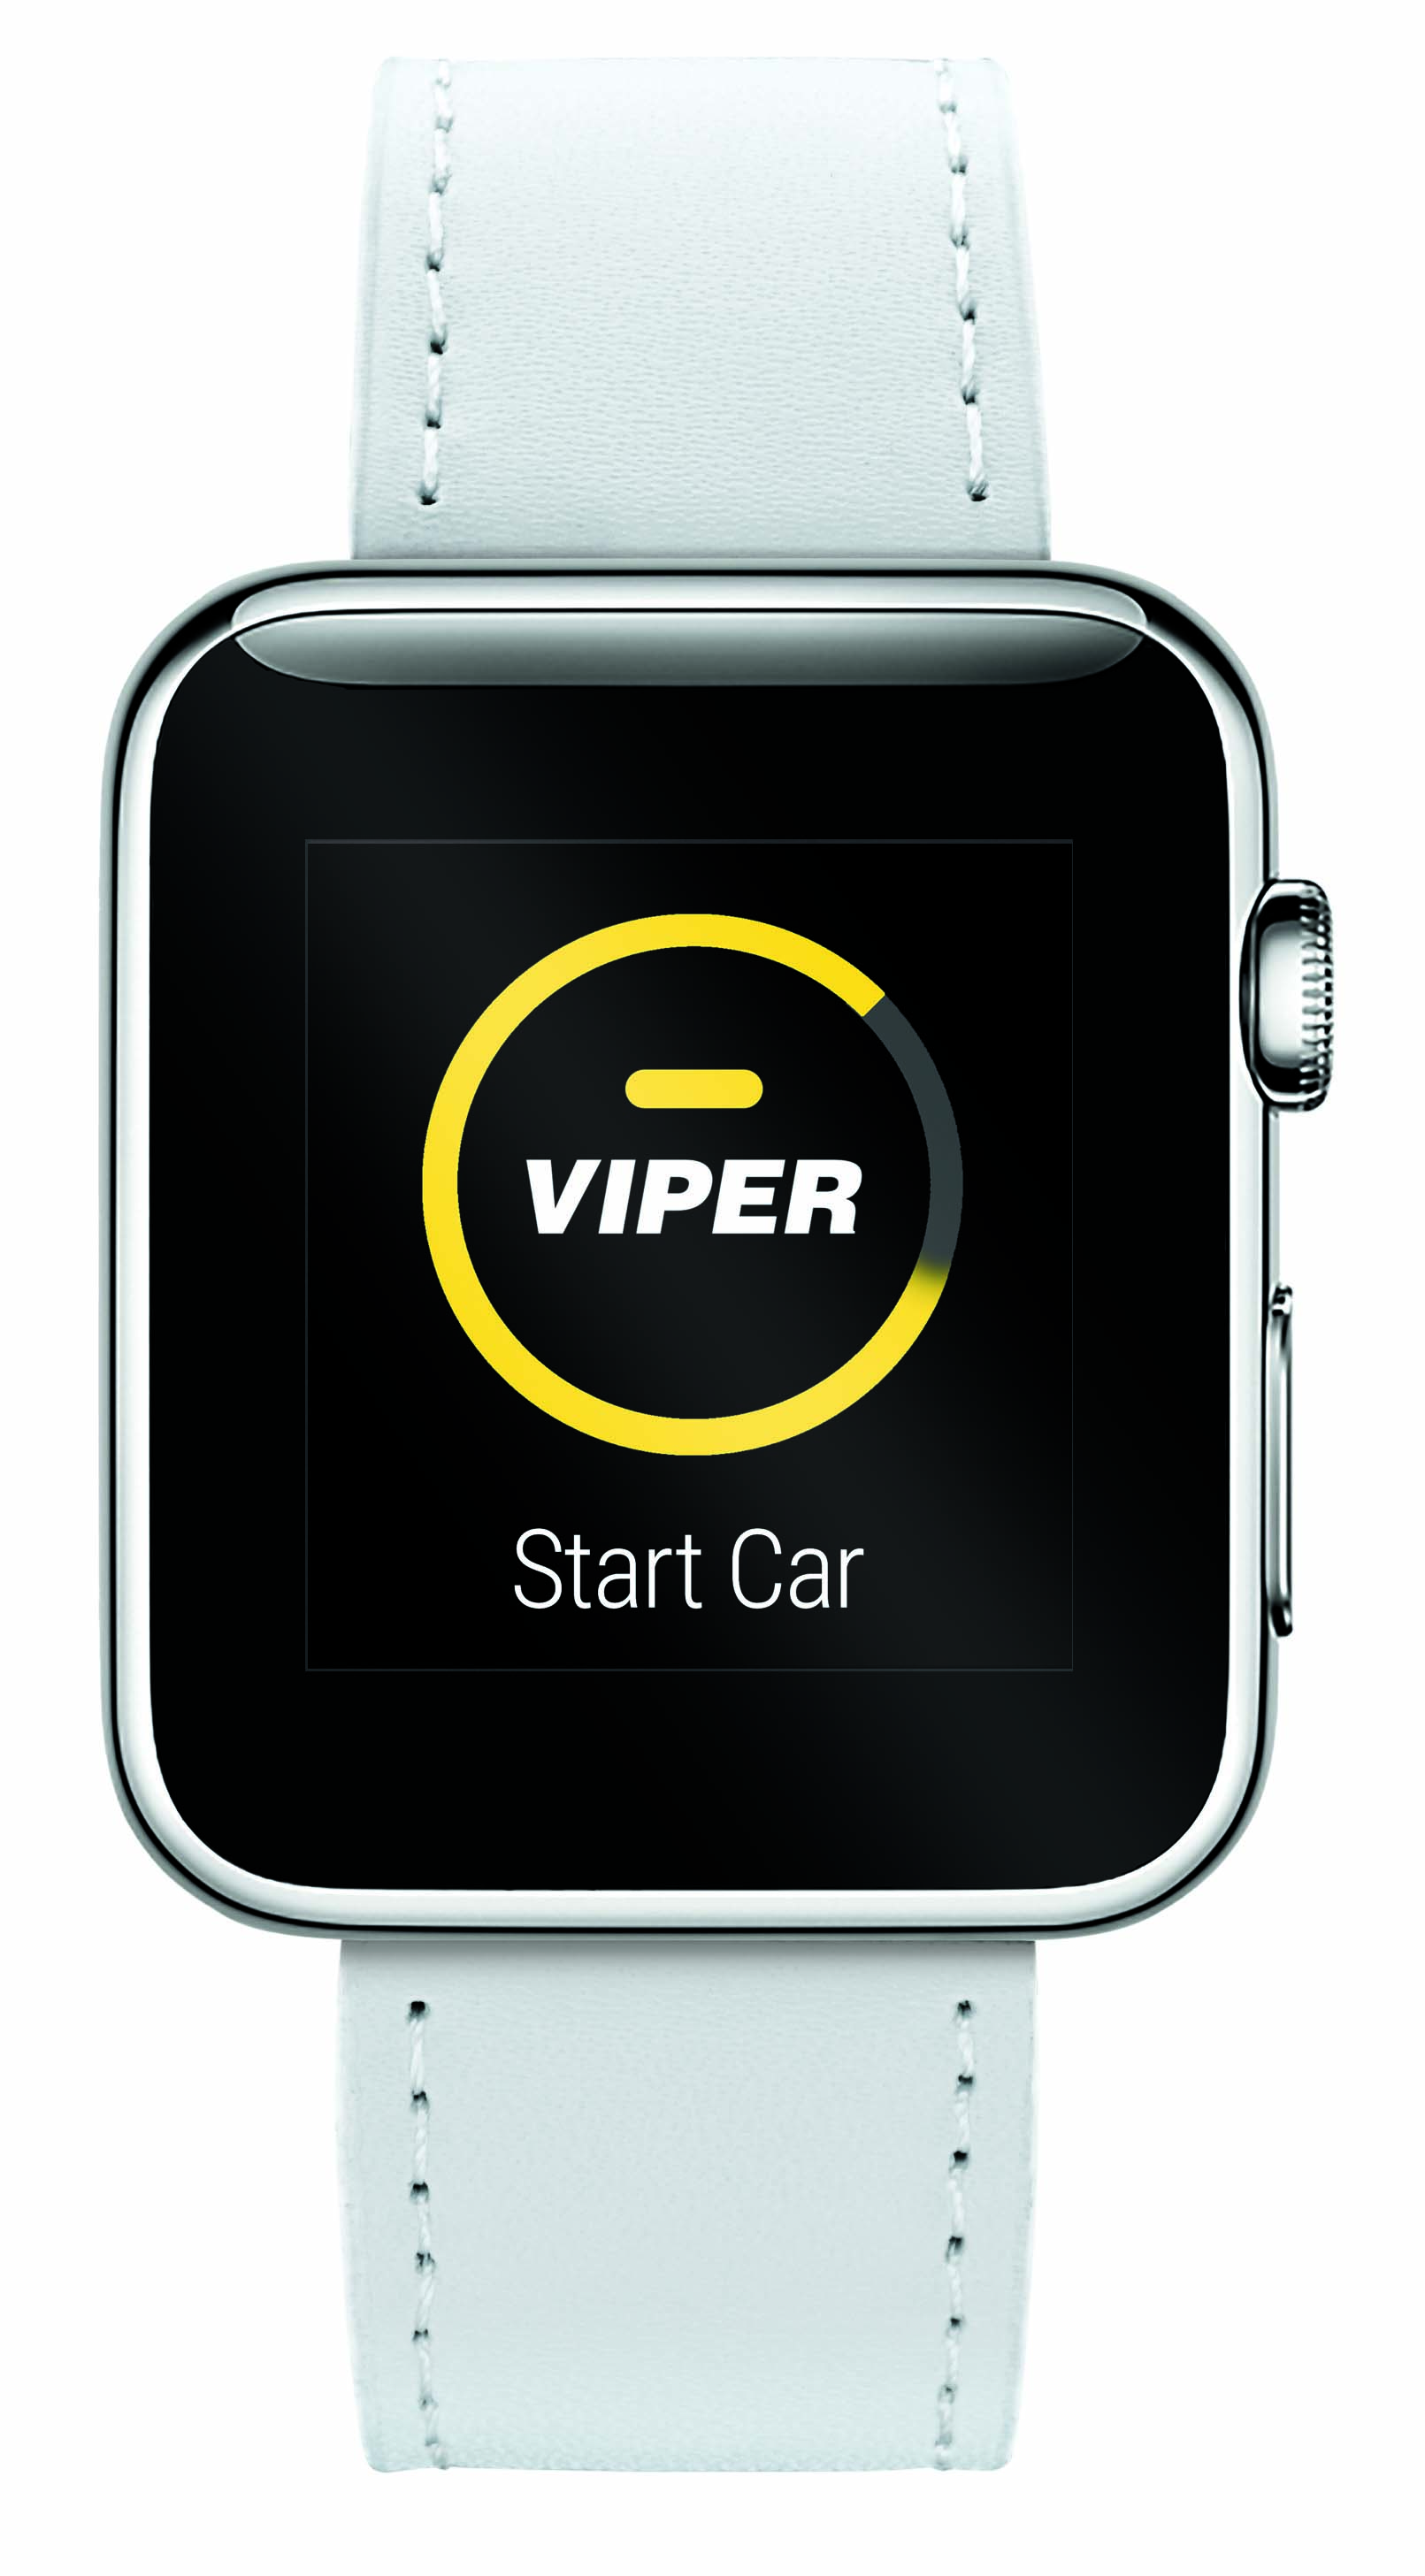 Apple Watch Viper SmartStart